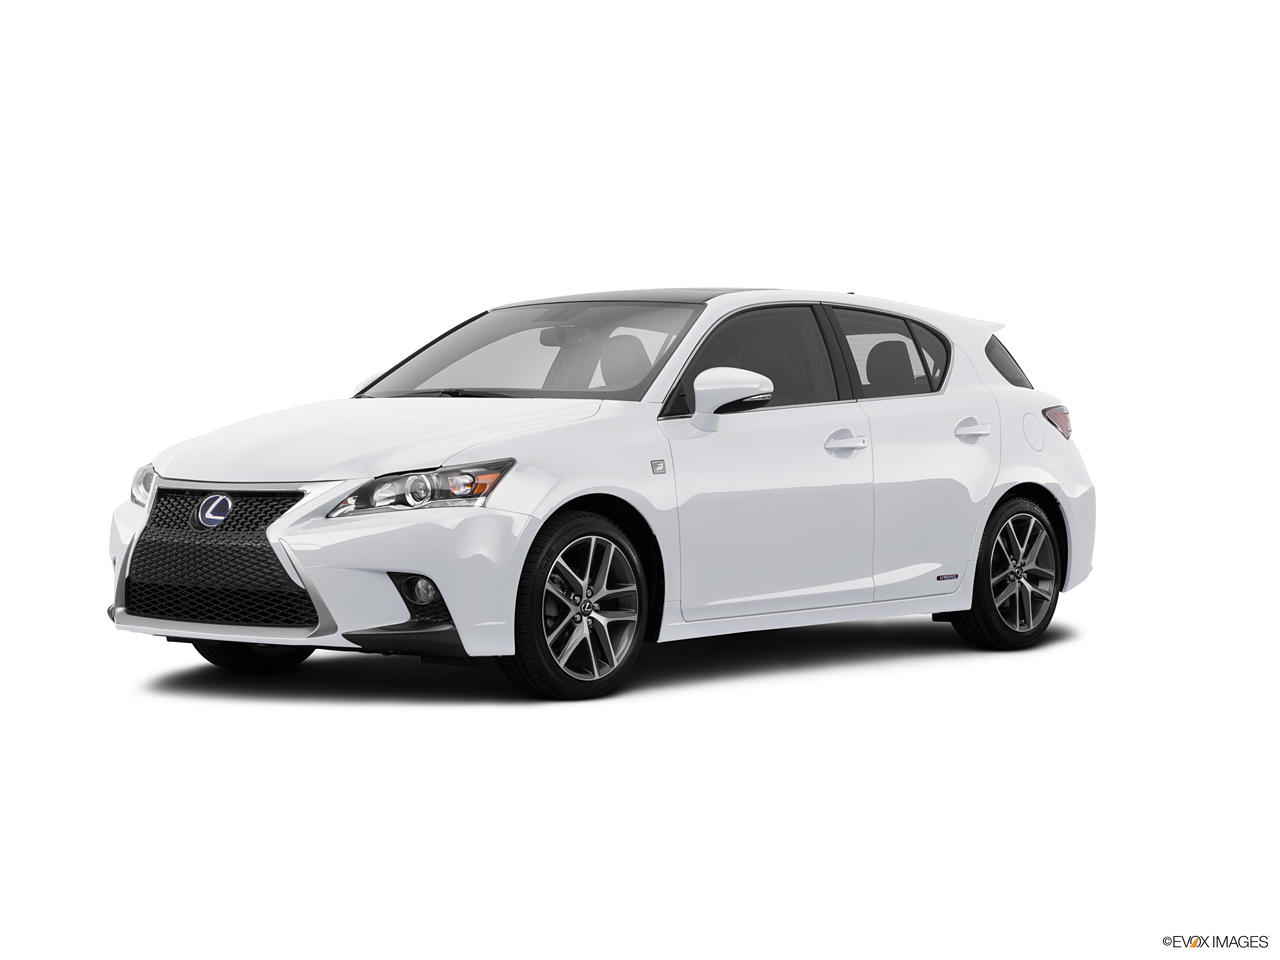 medium resolution of lexus service by top rated mechanics at the convenience of your home or office